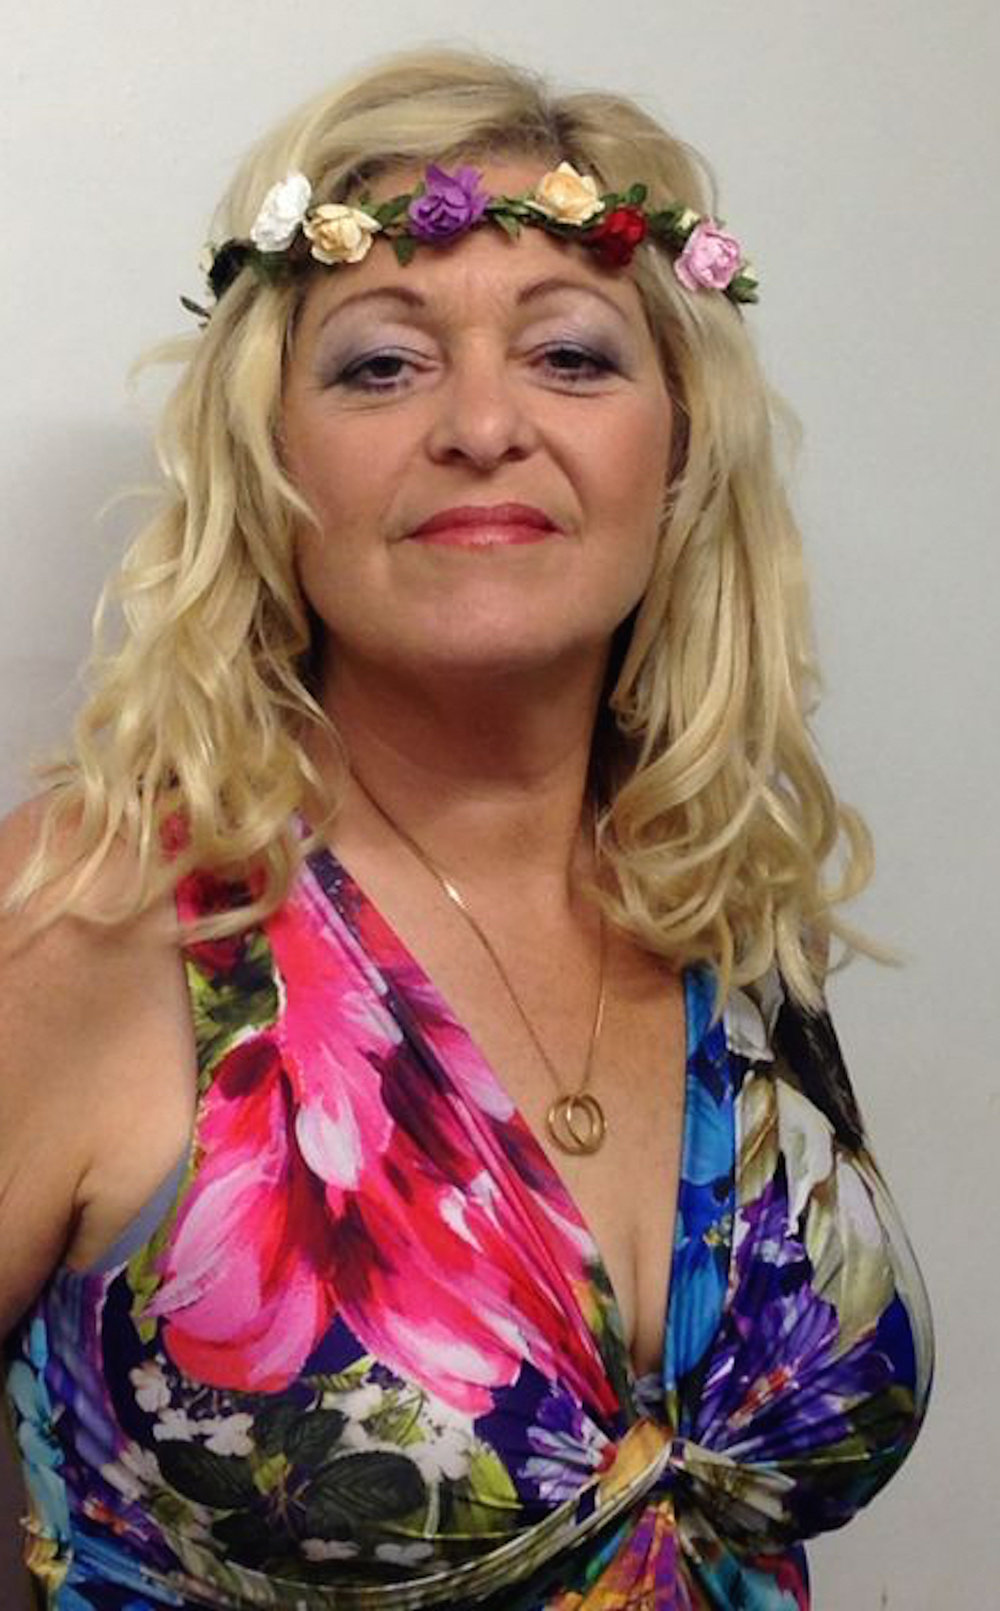 Sally Barker Backstage at Cropredy Aug 14.jpg